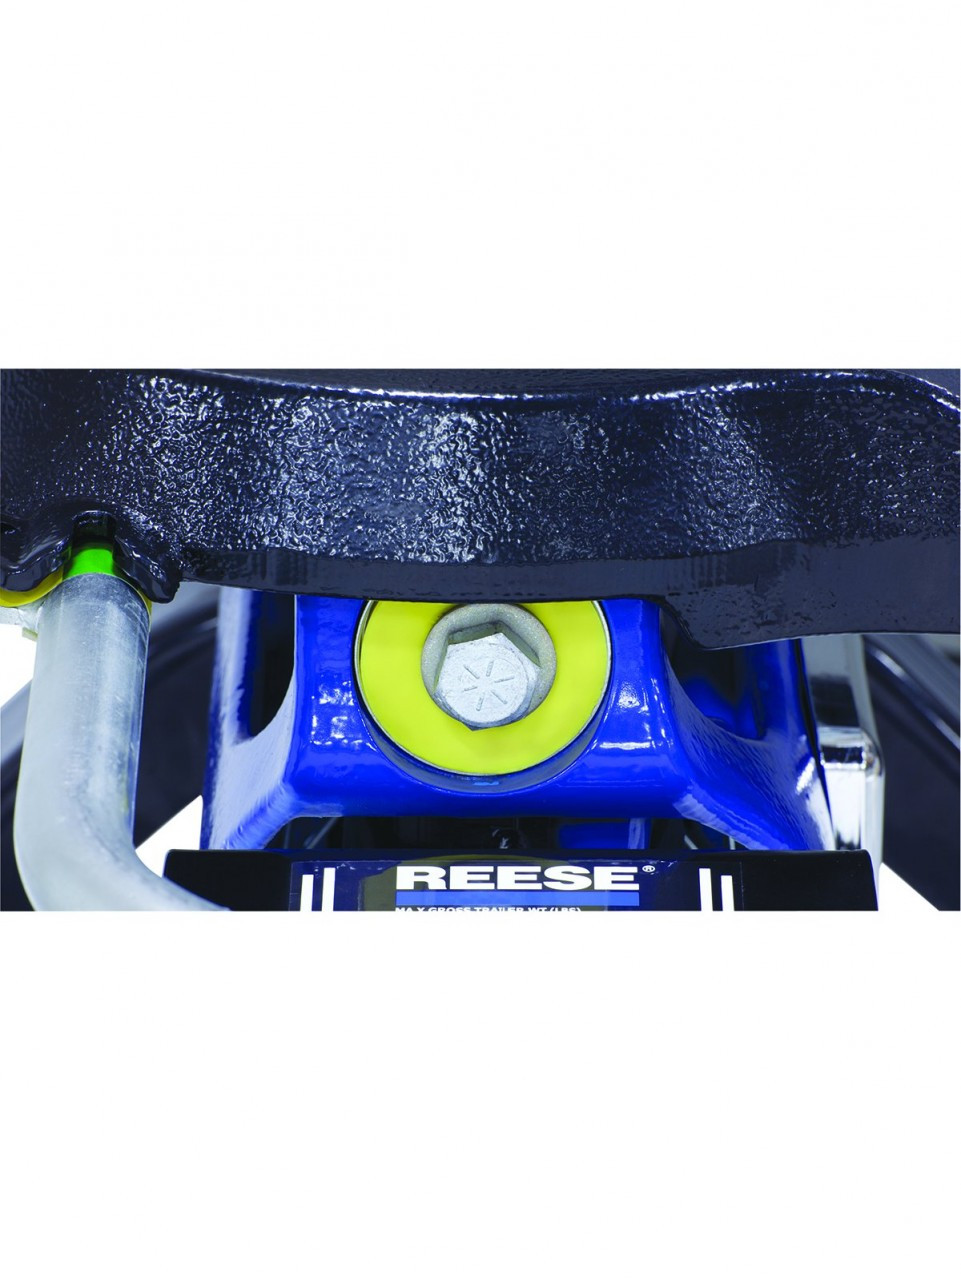 30869 --- Reese R16 Fifth Wheel Hitch with Round Slider